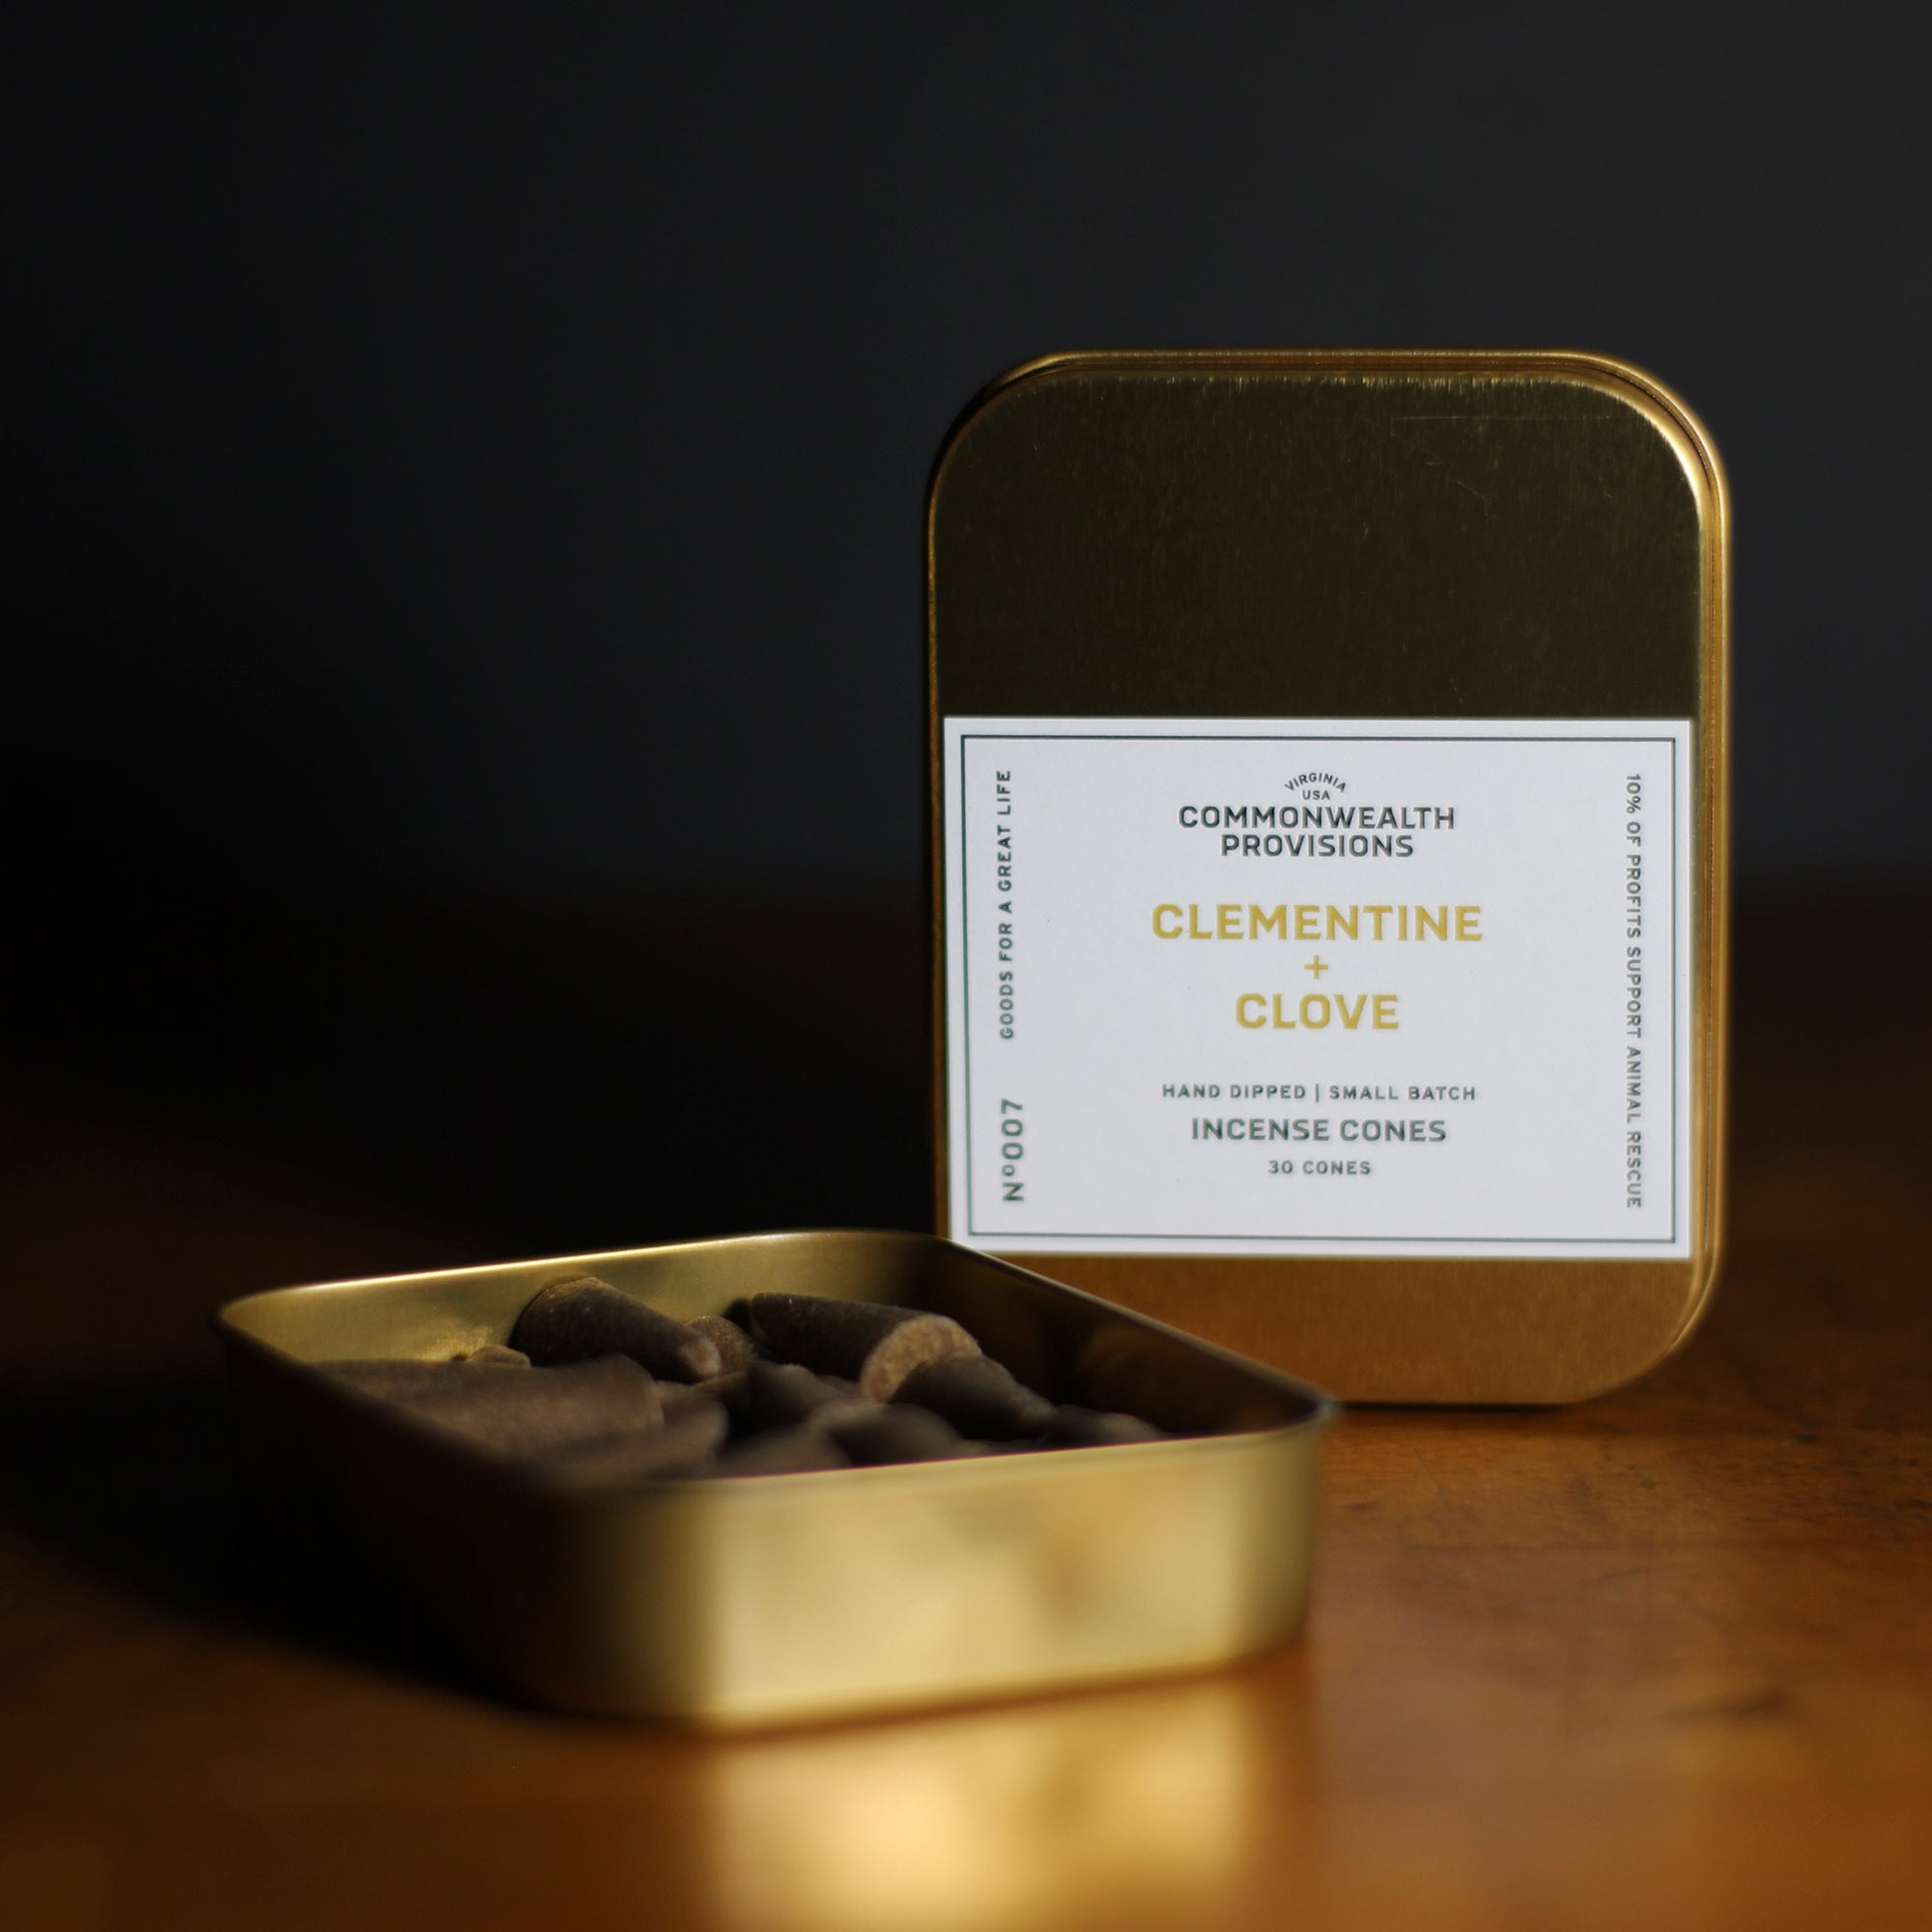 Commonwealth Provisions Clementine + Clove Incense Cones